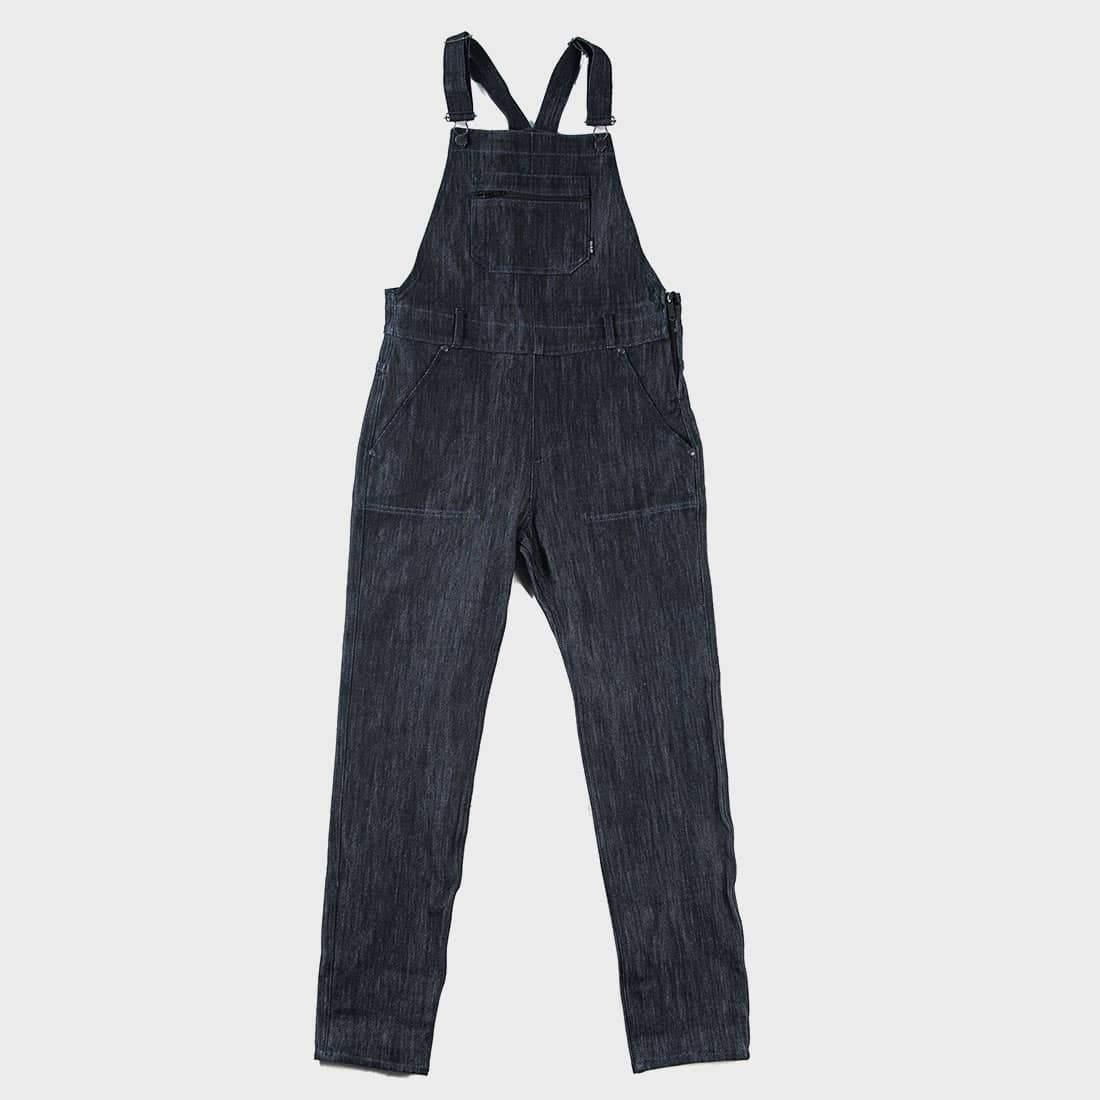 Atwyld Two Wheels Overalls Denim